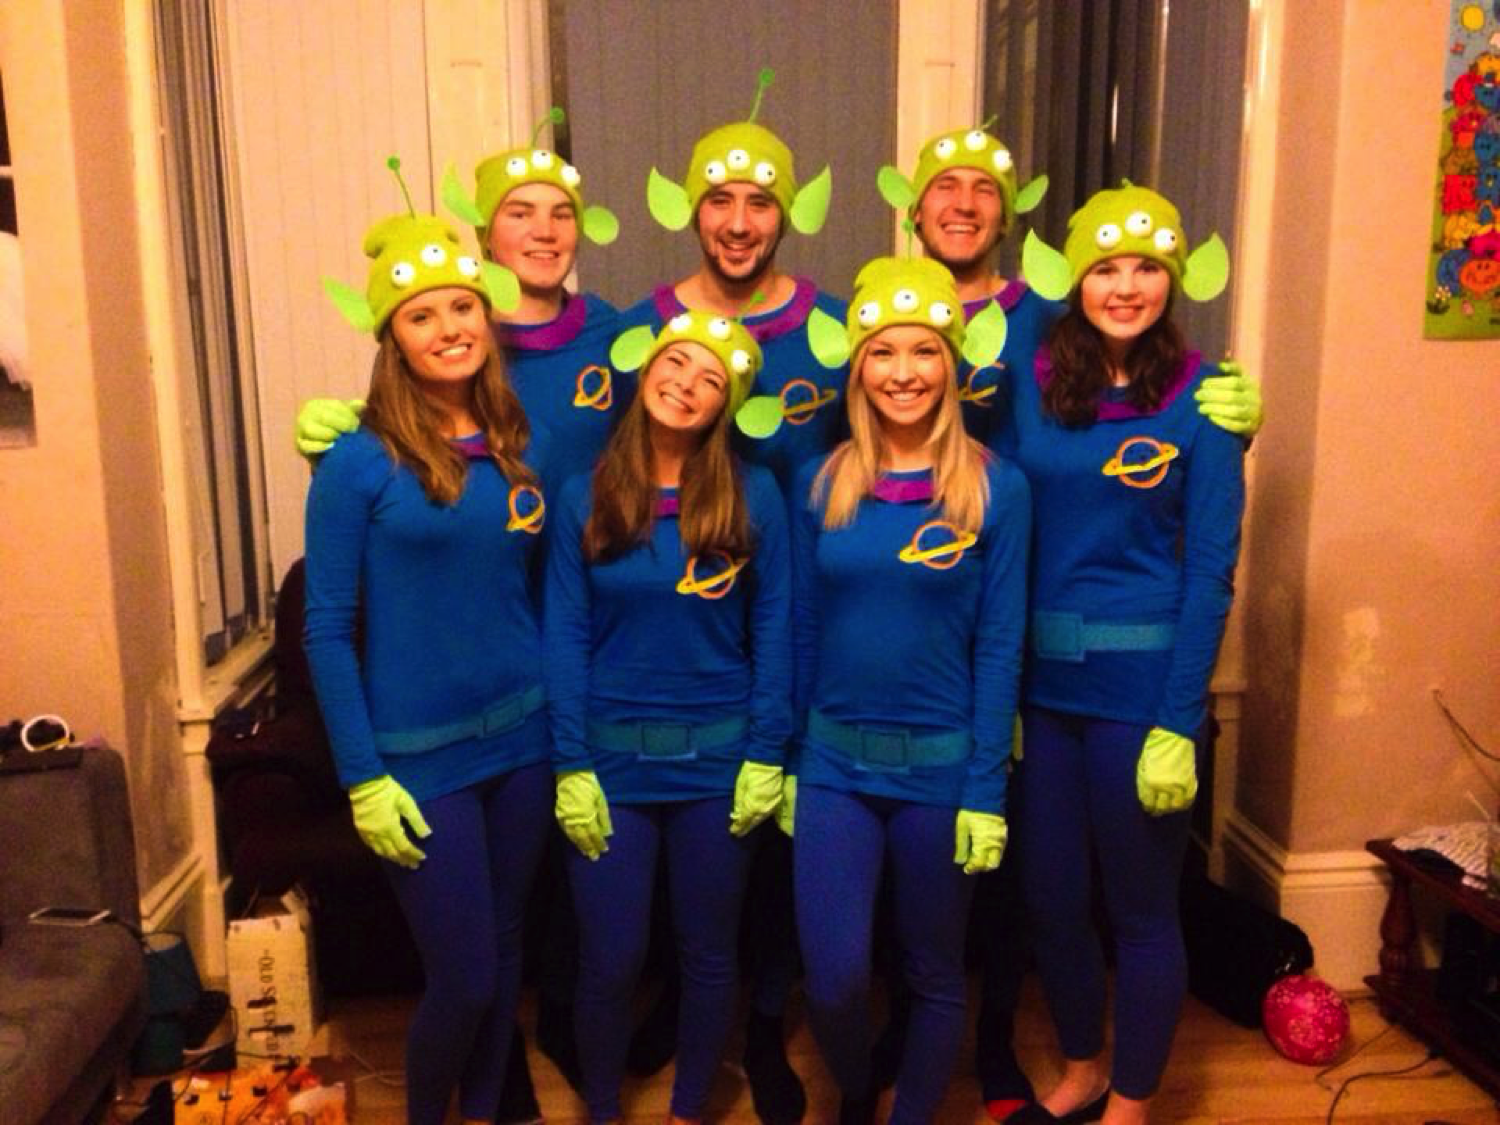 Disney pixar fancy dress group team costumes toy story little green aliens the claw DIY homemade  sc 1 st  Clothes and Stuff & DIY HOMEMADE TOY STORY ALIEN COSTUME | Clothes and Stuff